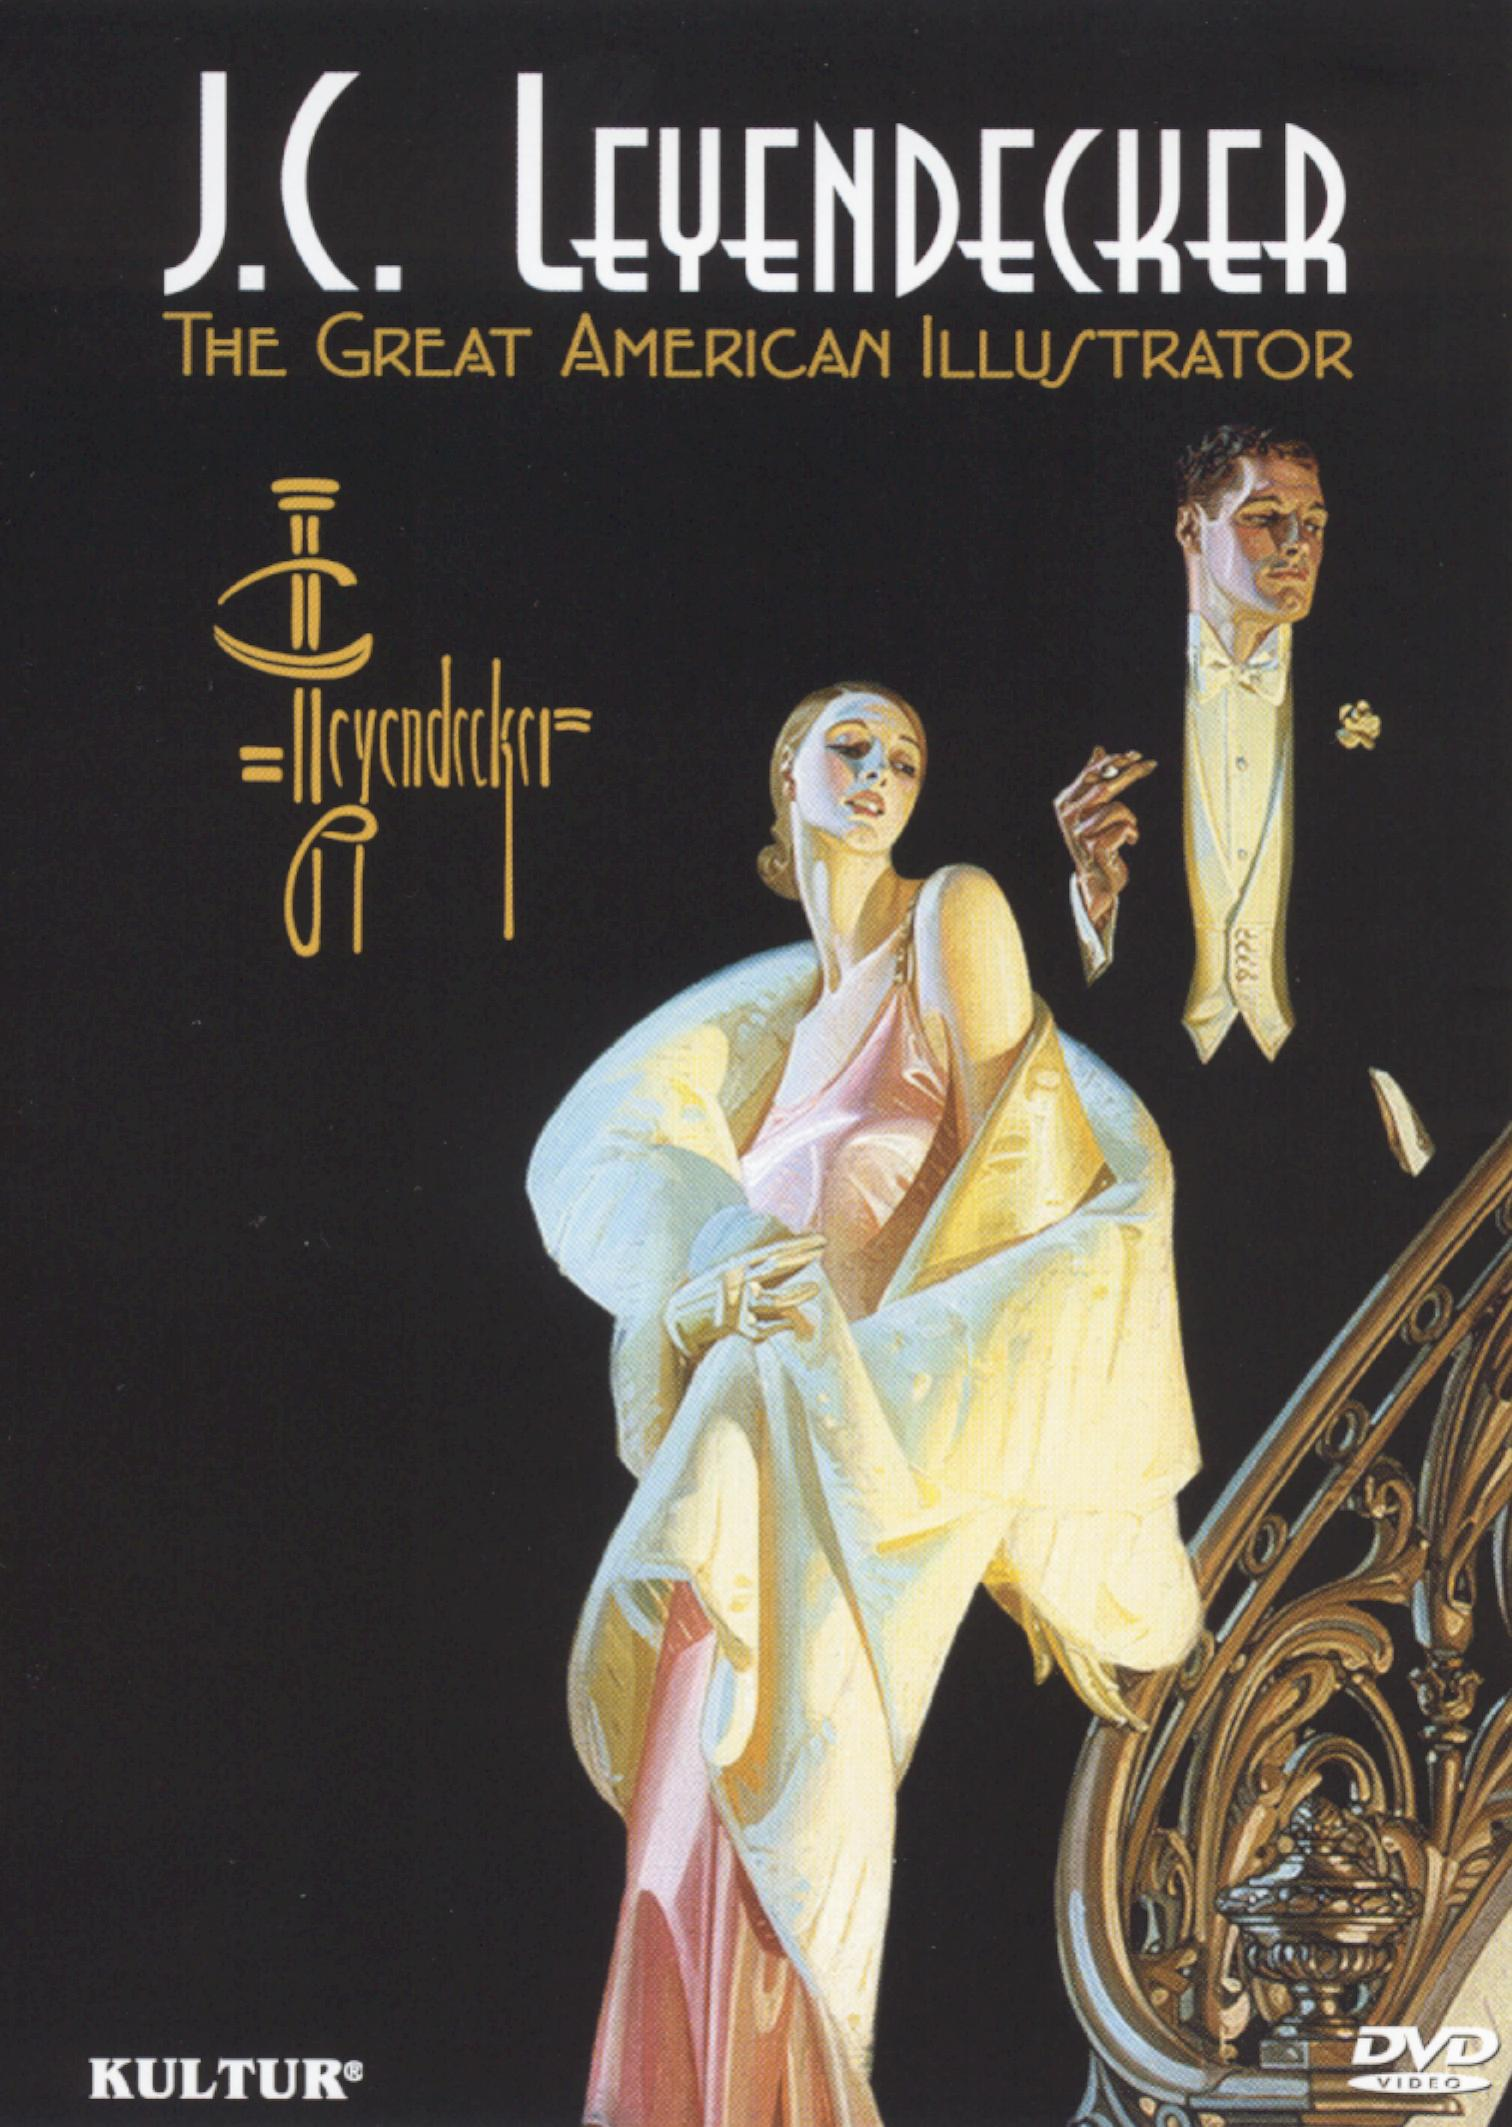 J.C. Leyendecker: The Great American Illustrator